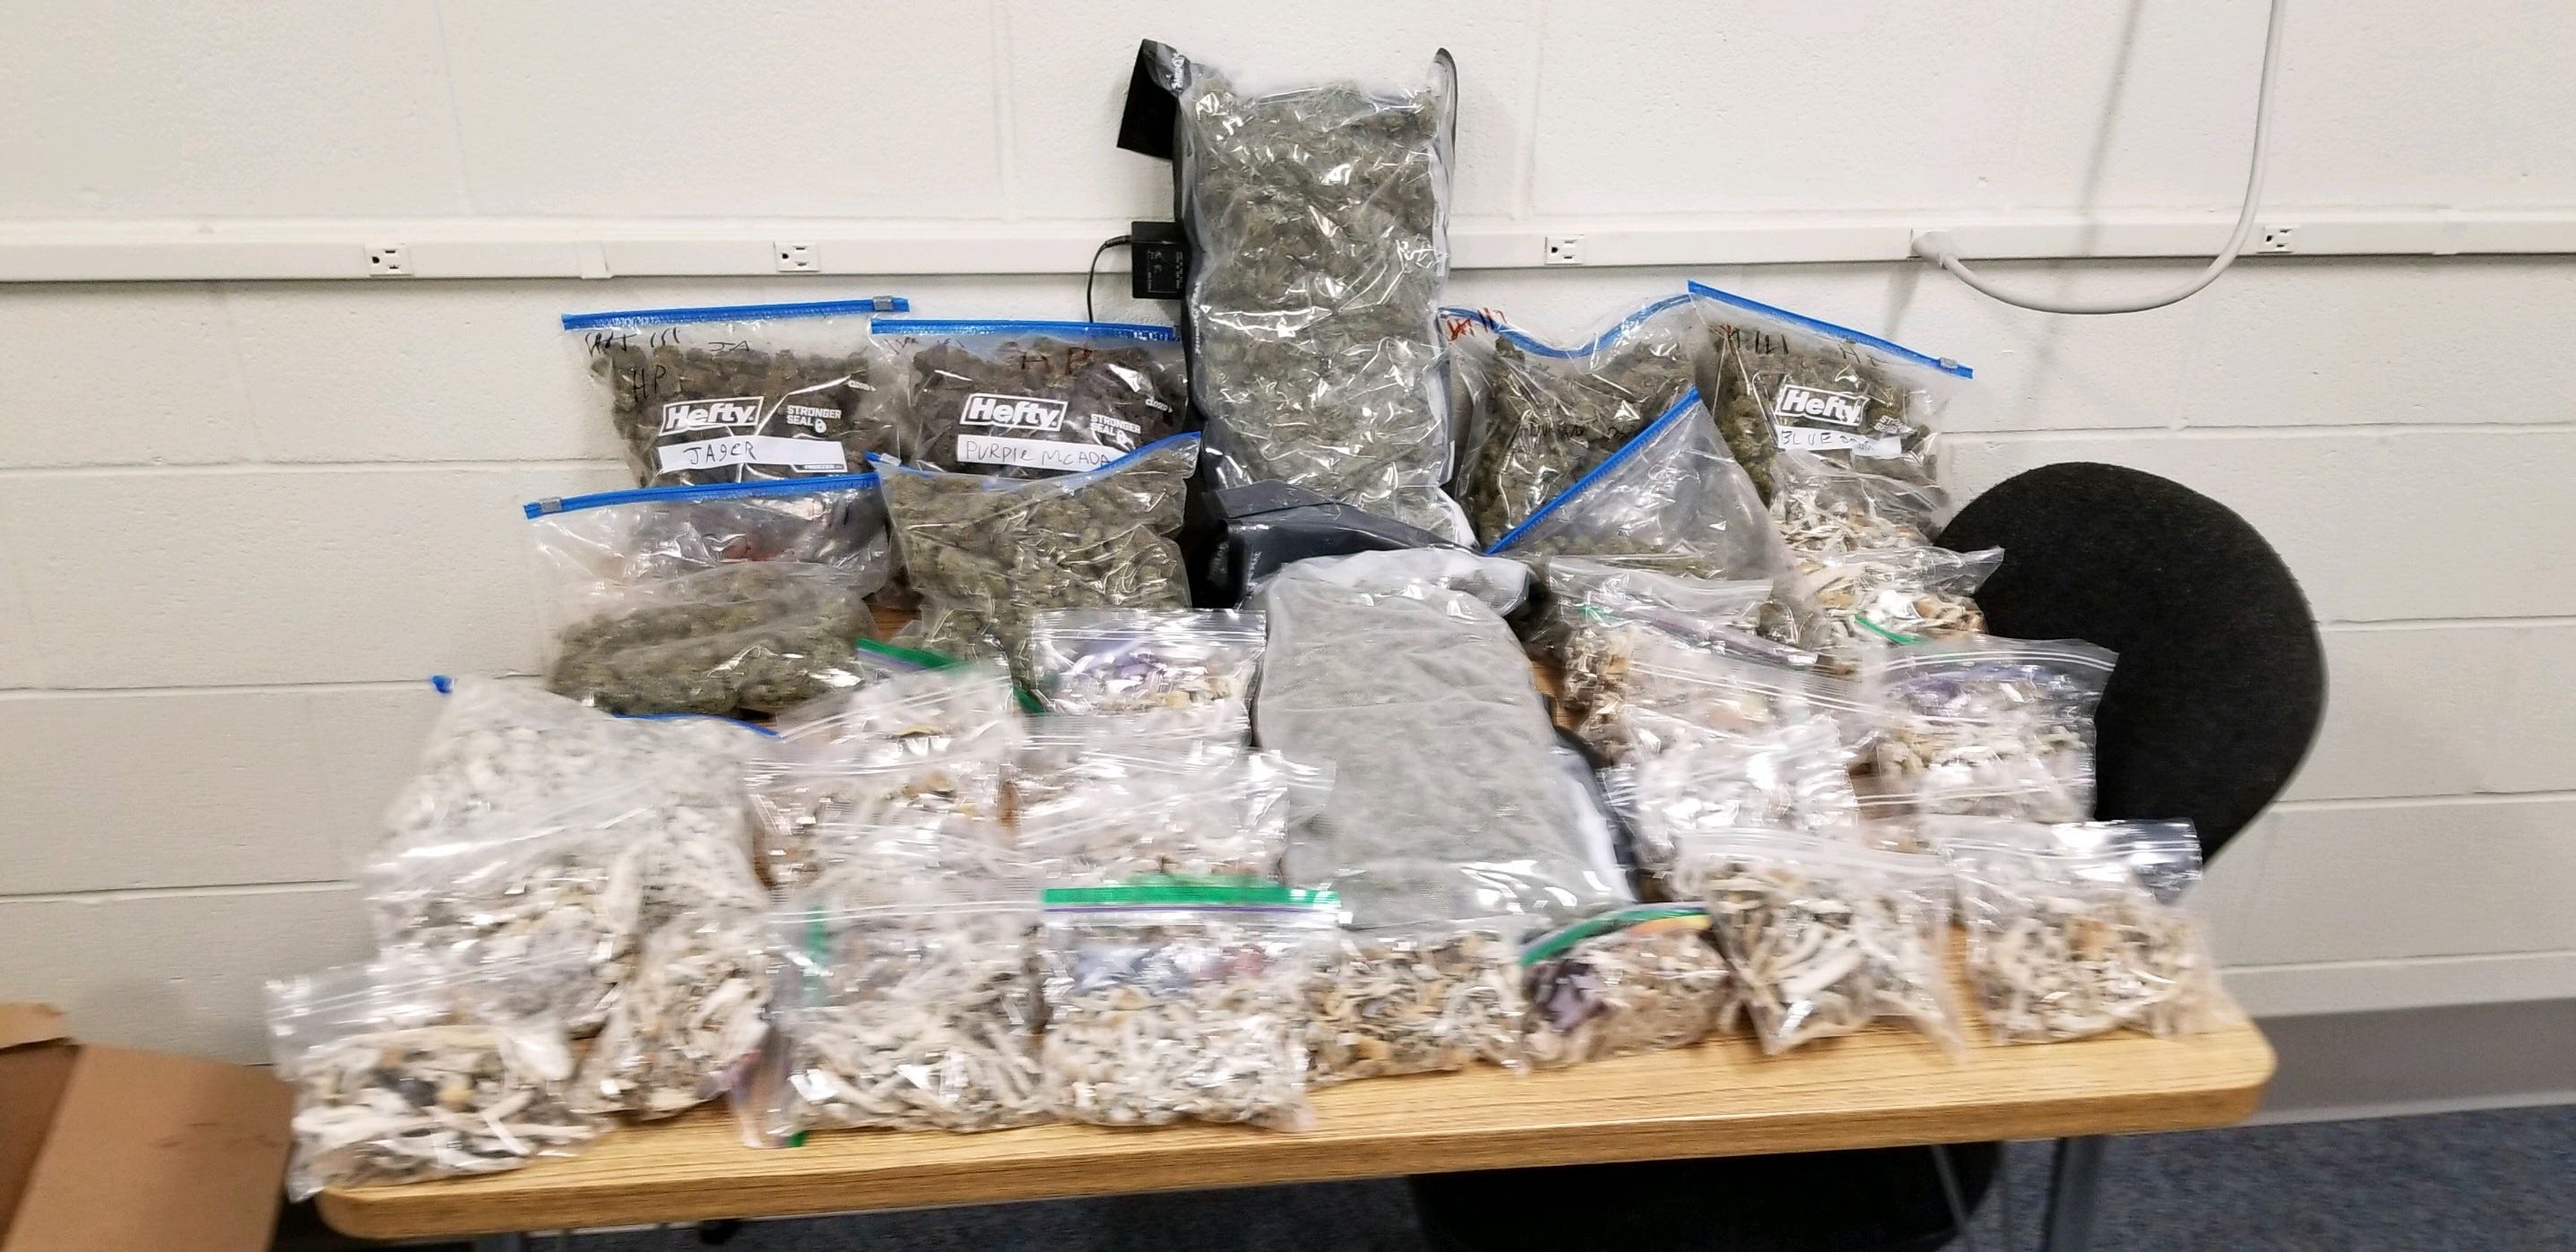 Thousands of dollars in packaged psilocybin mushrooms  and marijuana were seized in an Otsego County drug bust.